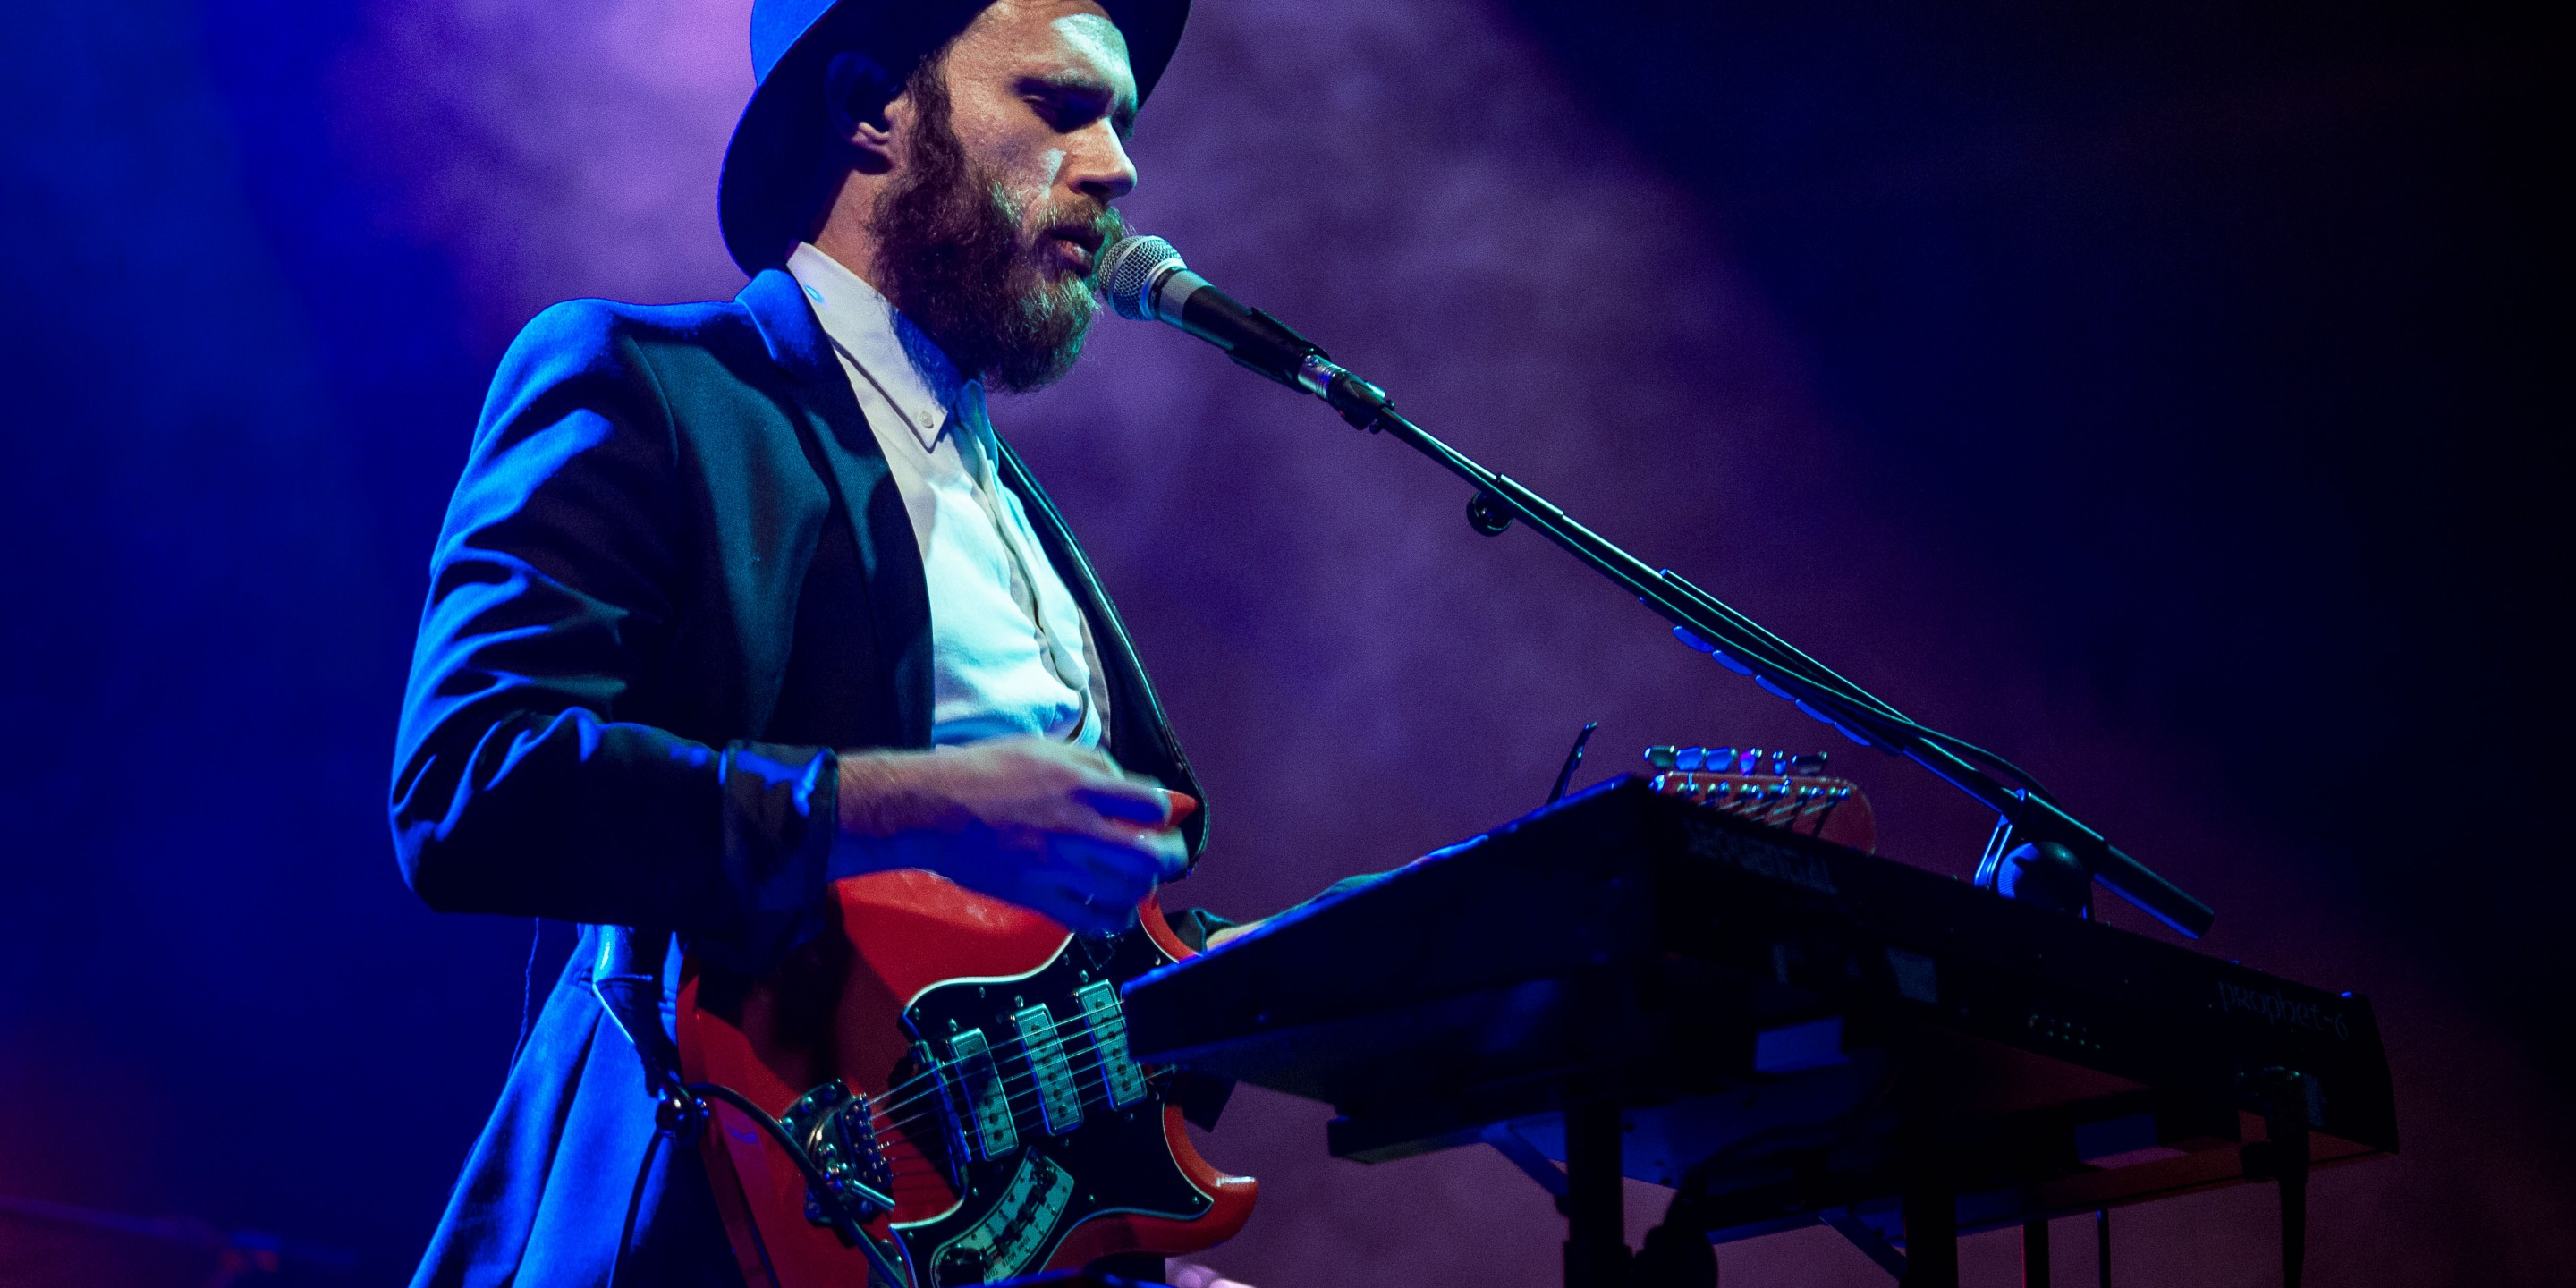 James Vincent McMorrow @ The Ulster Hall 12